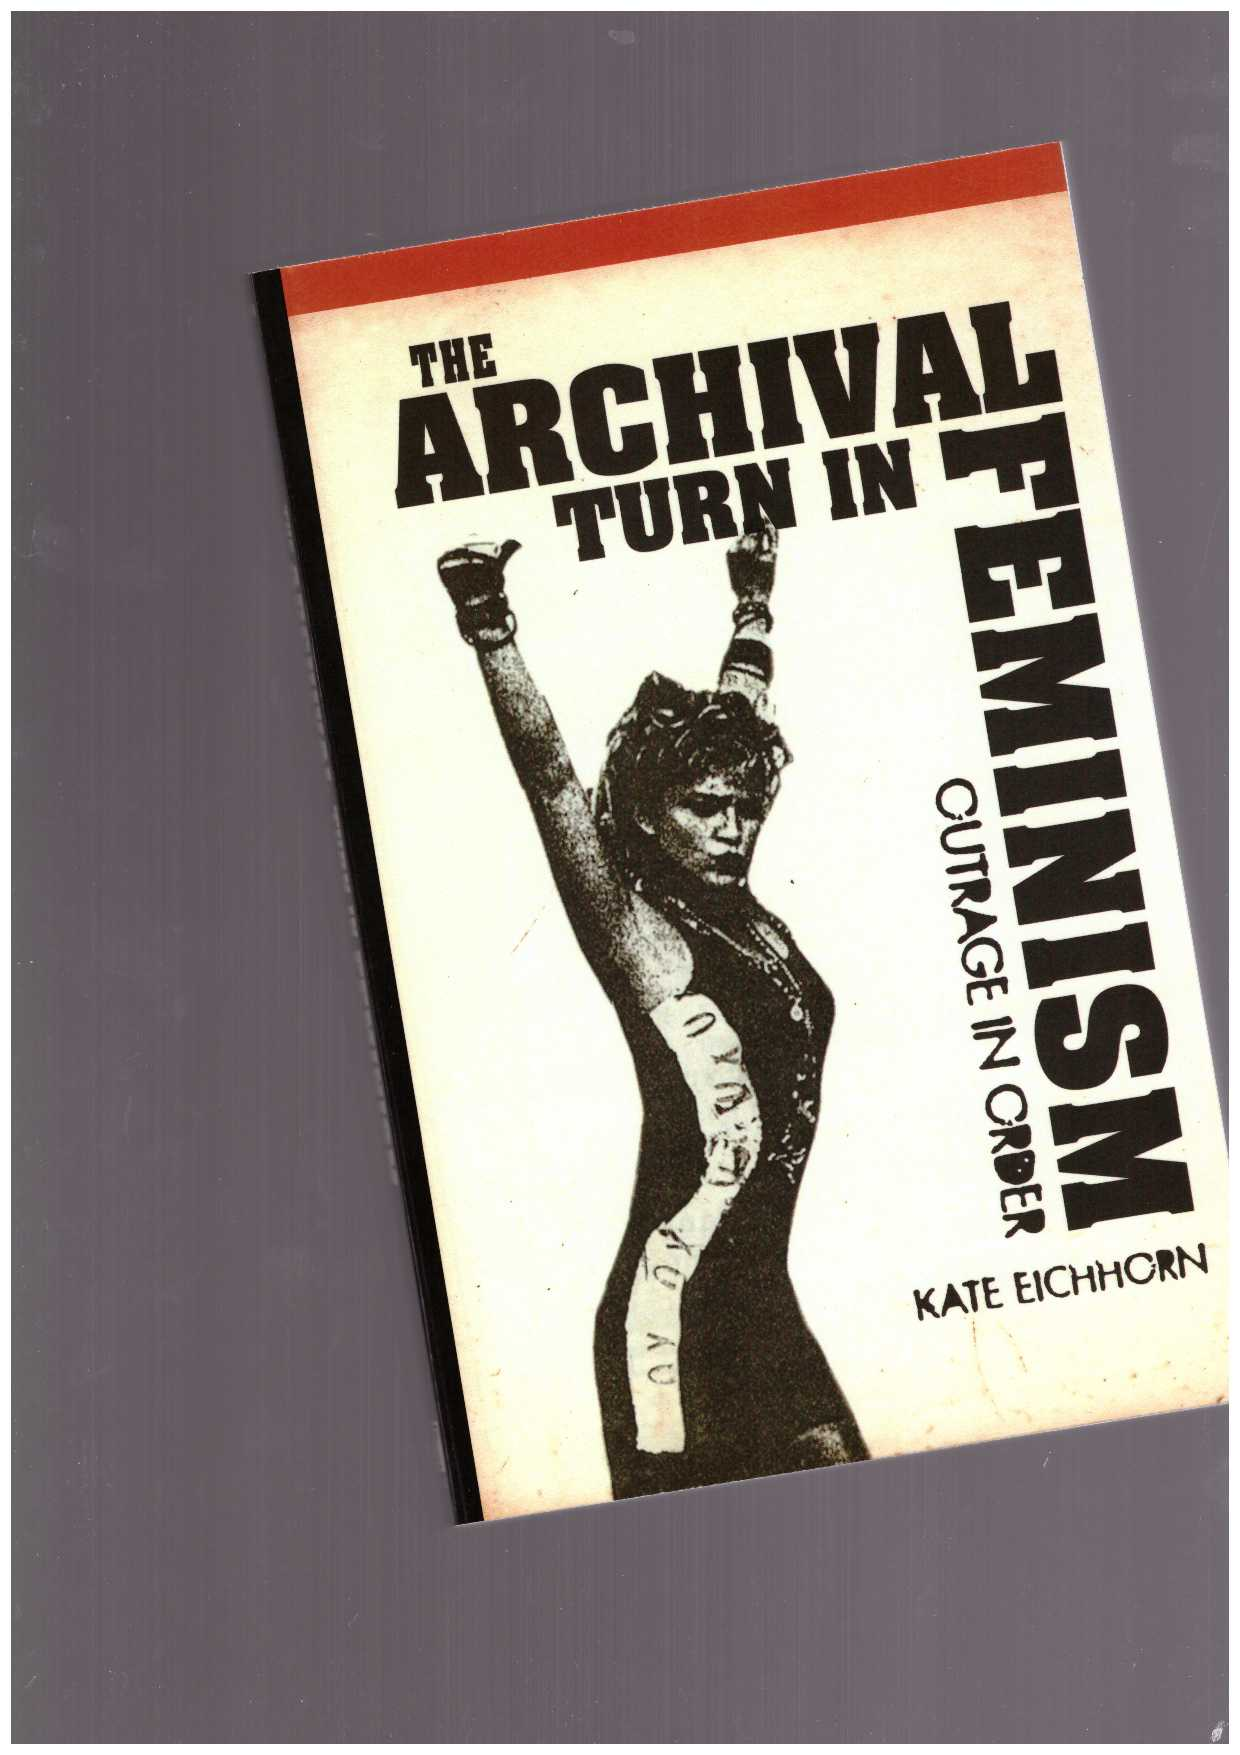 EICHHORN, Kate - The Archival Turn in Feminism. Outrage in Order